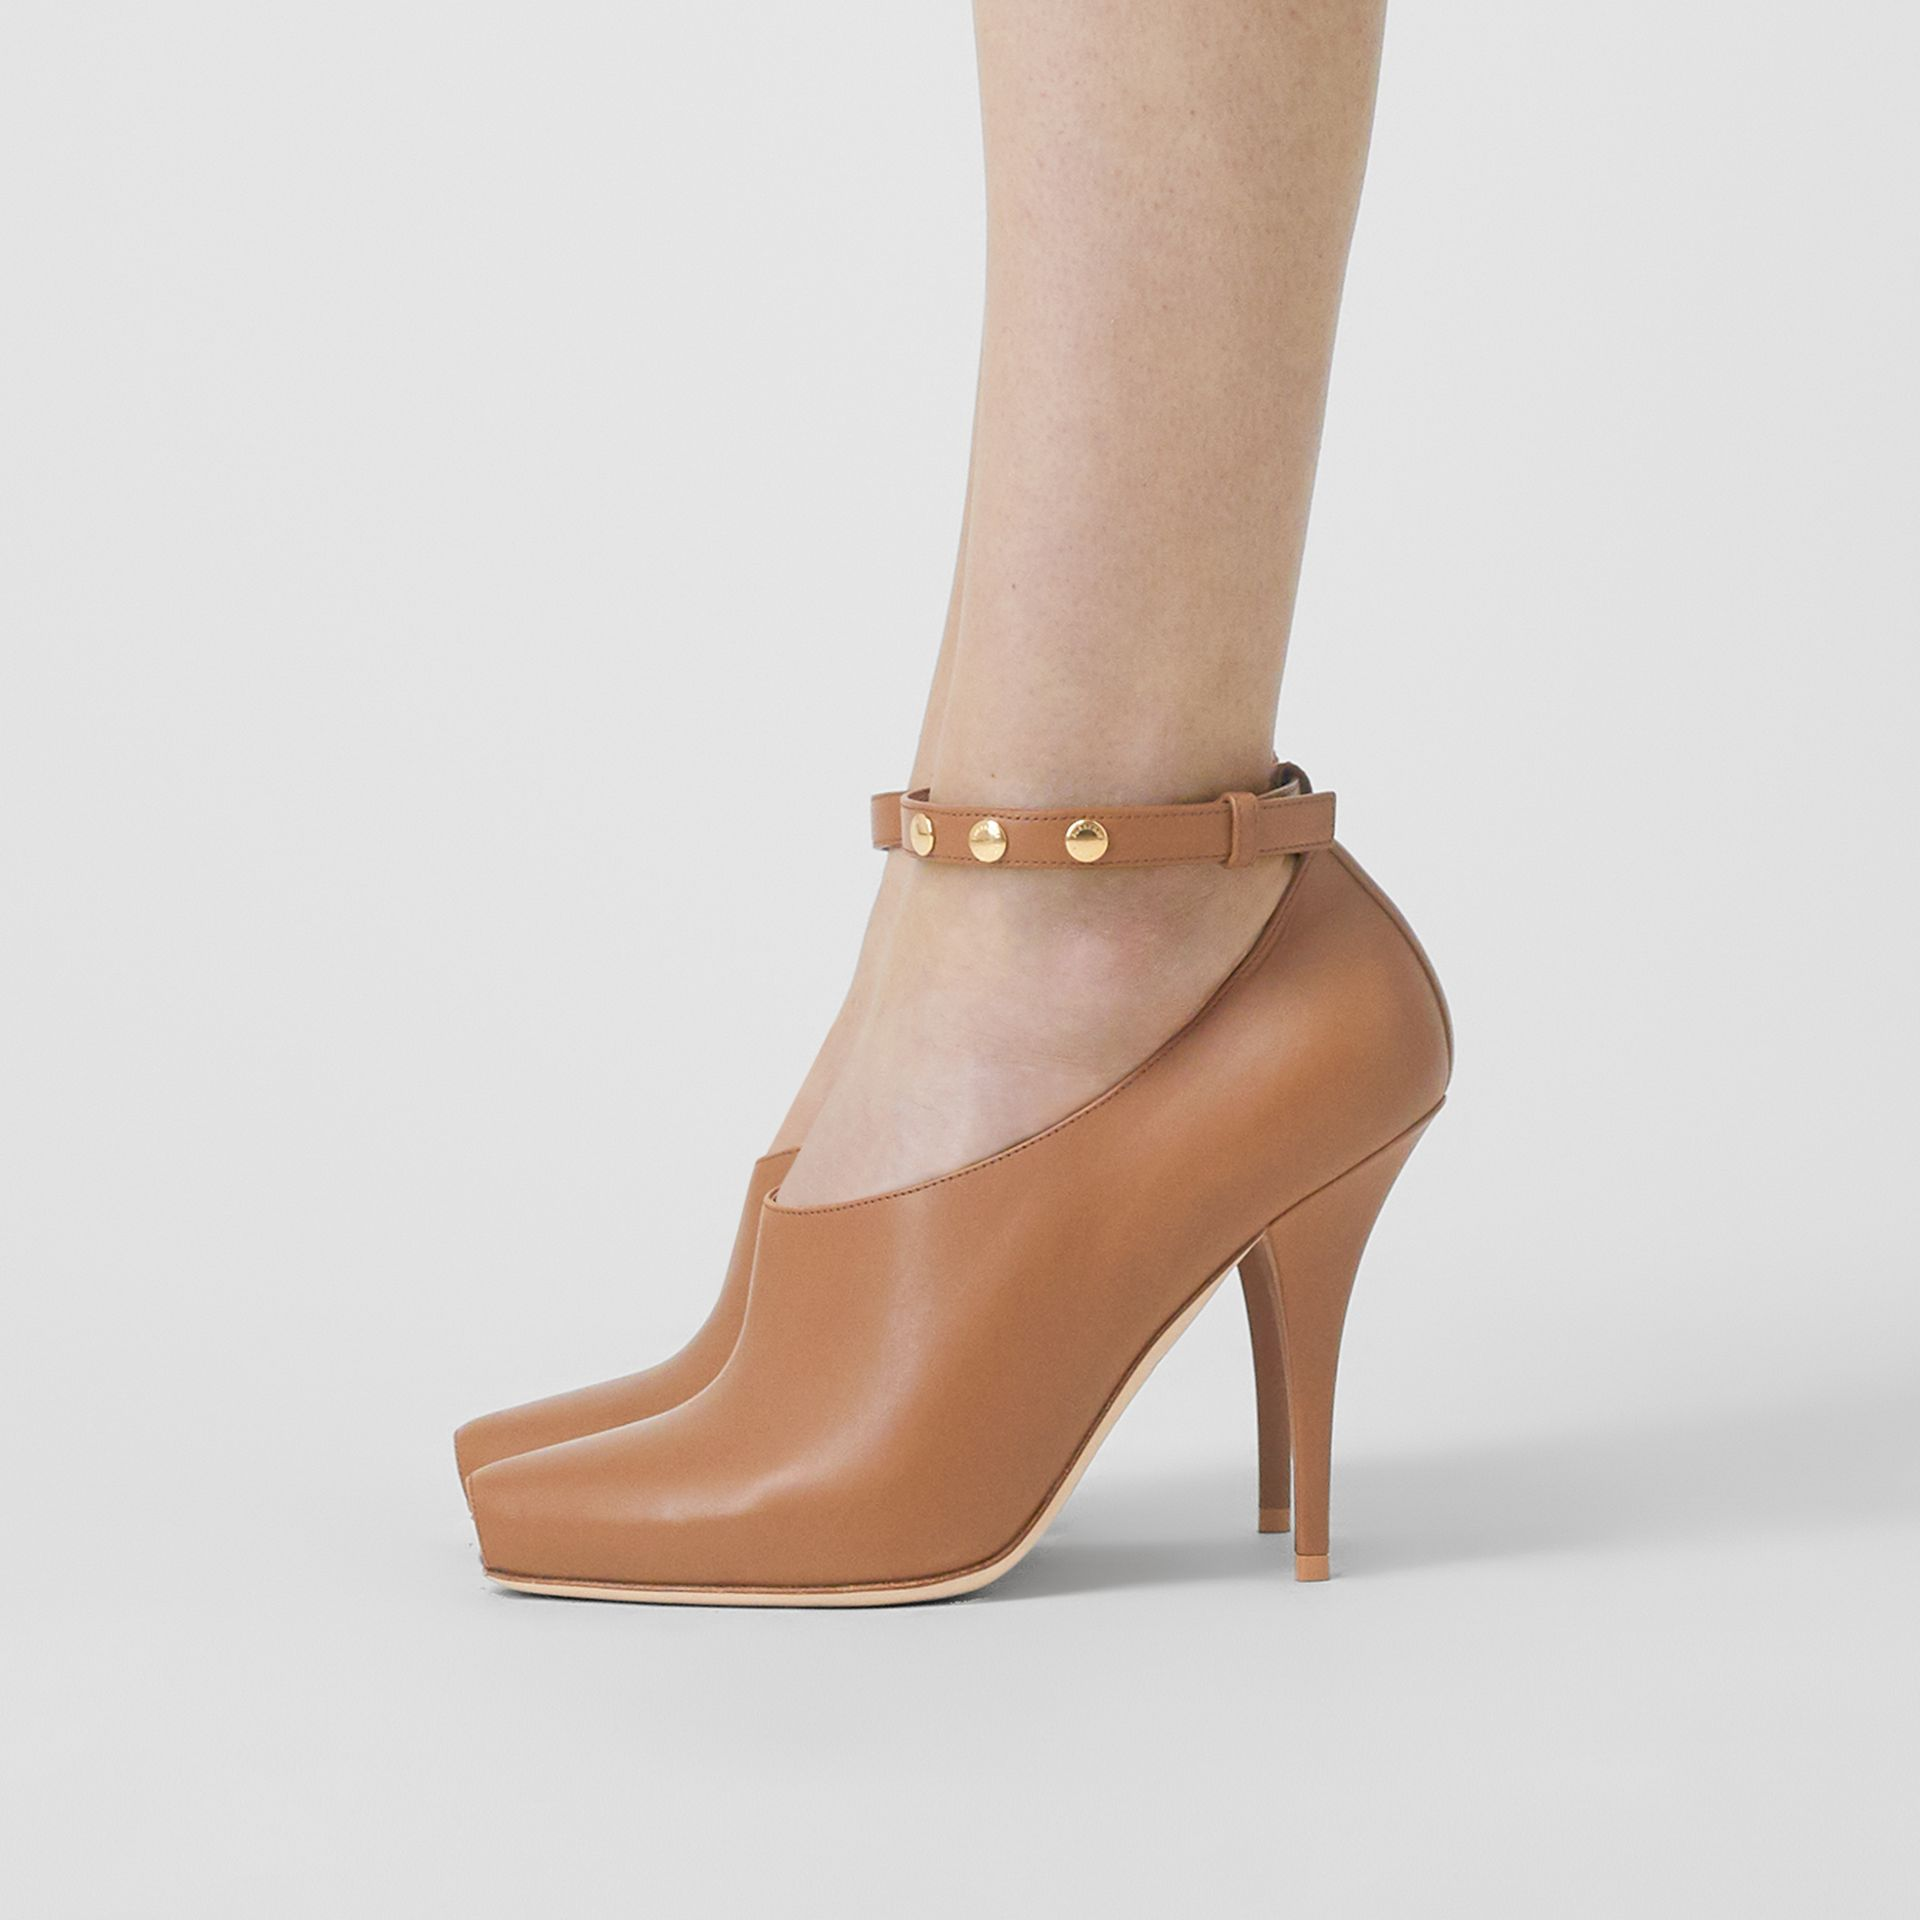 Leather Peep-toe Pumps in Amber Brown - Women | Burberry - gallery image 2